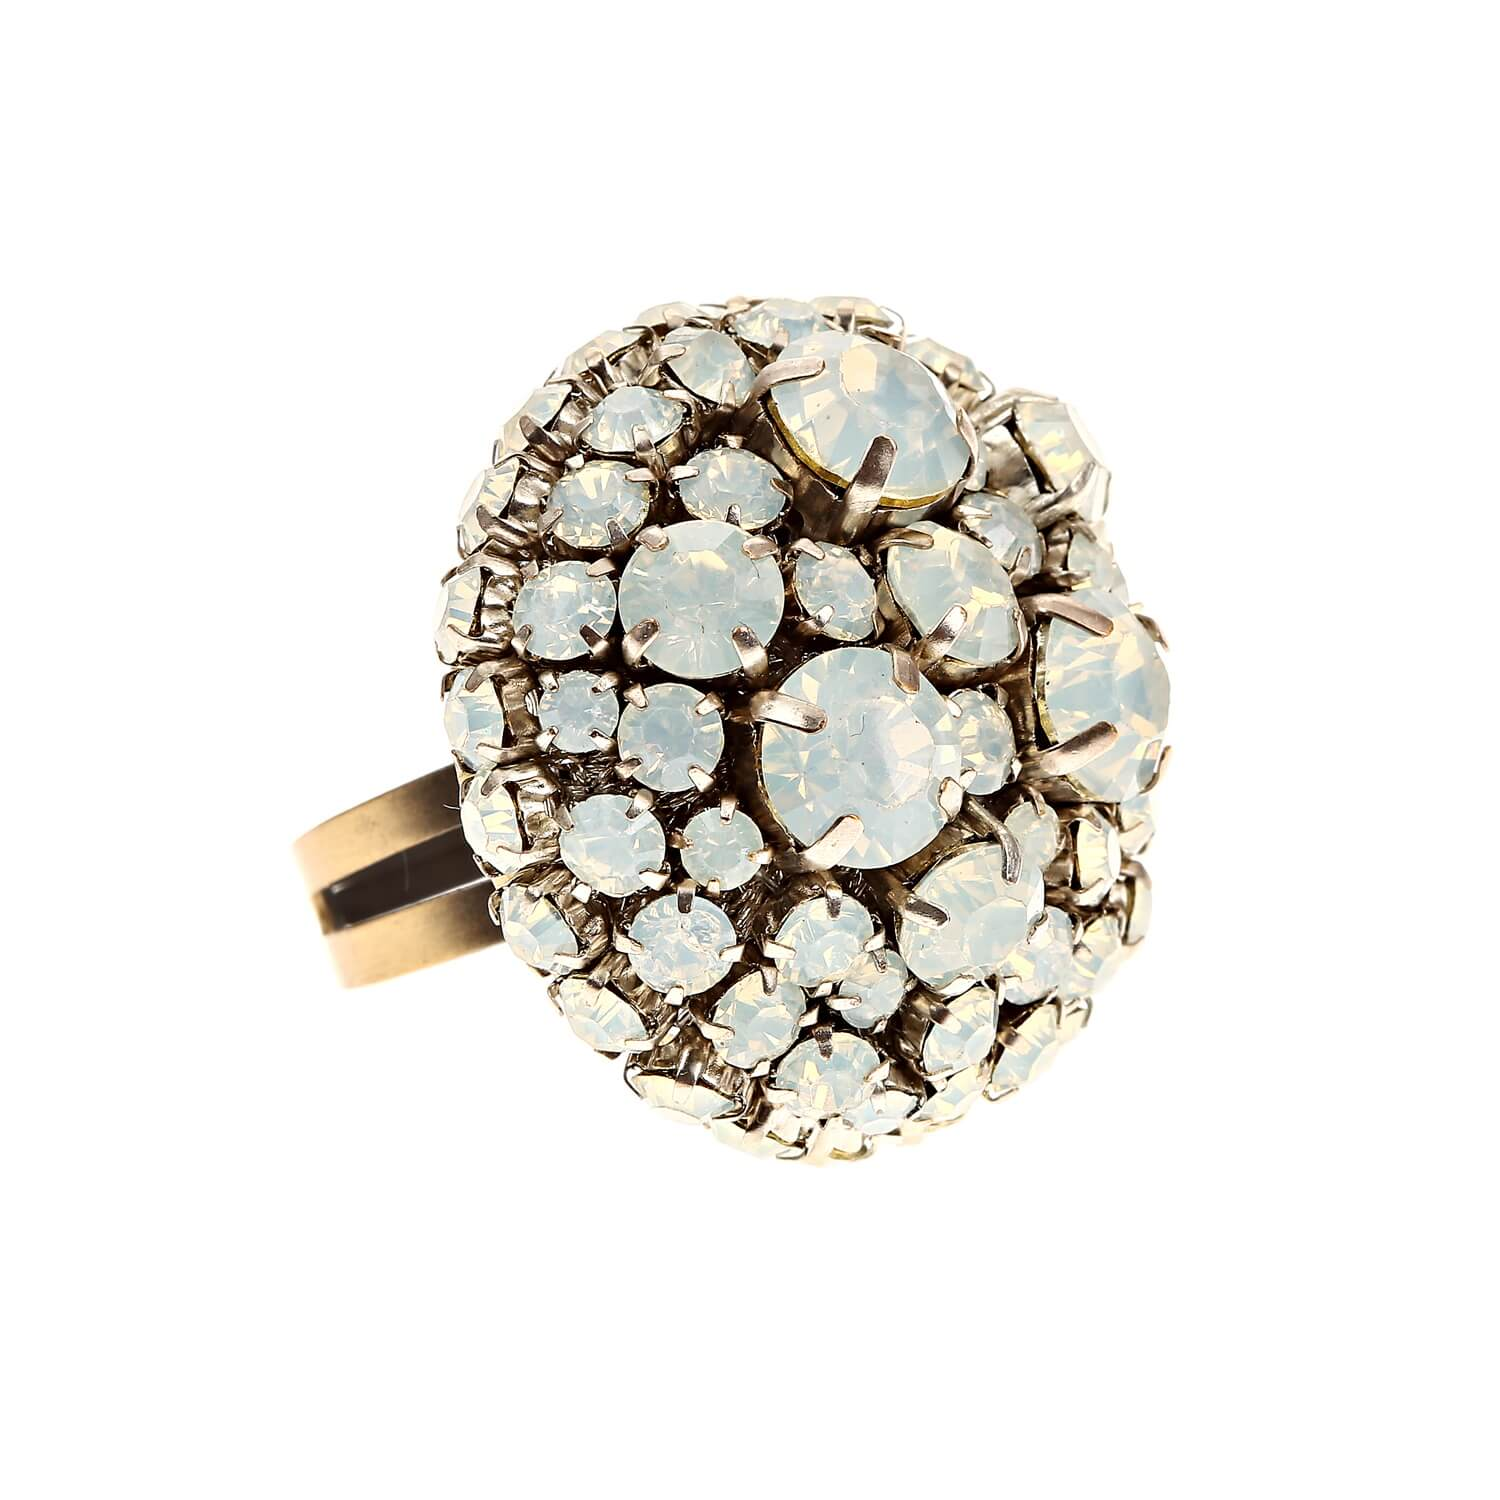 Matilda Opal Cocktail Ring